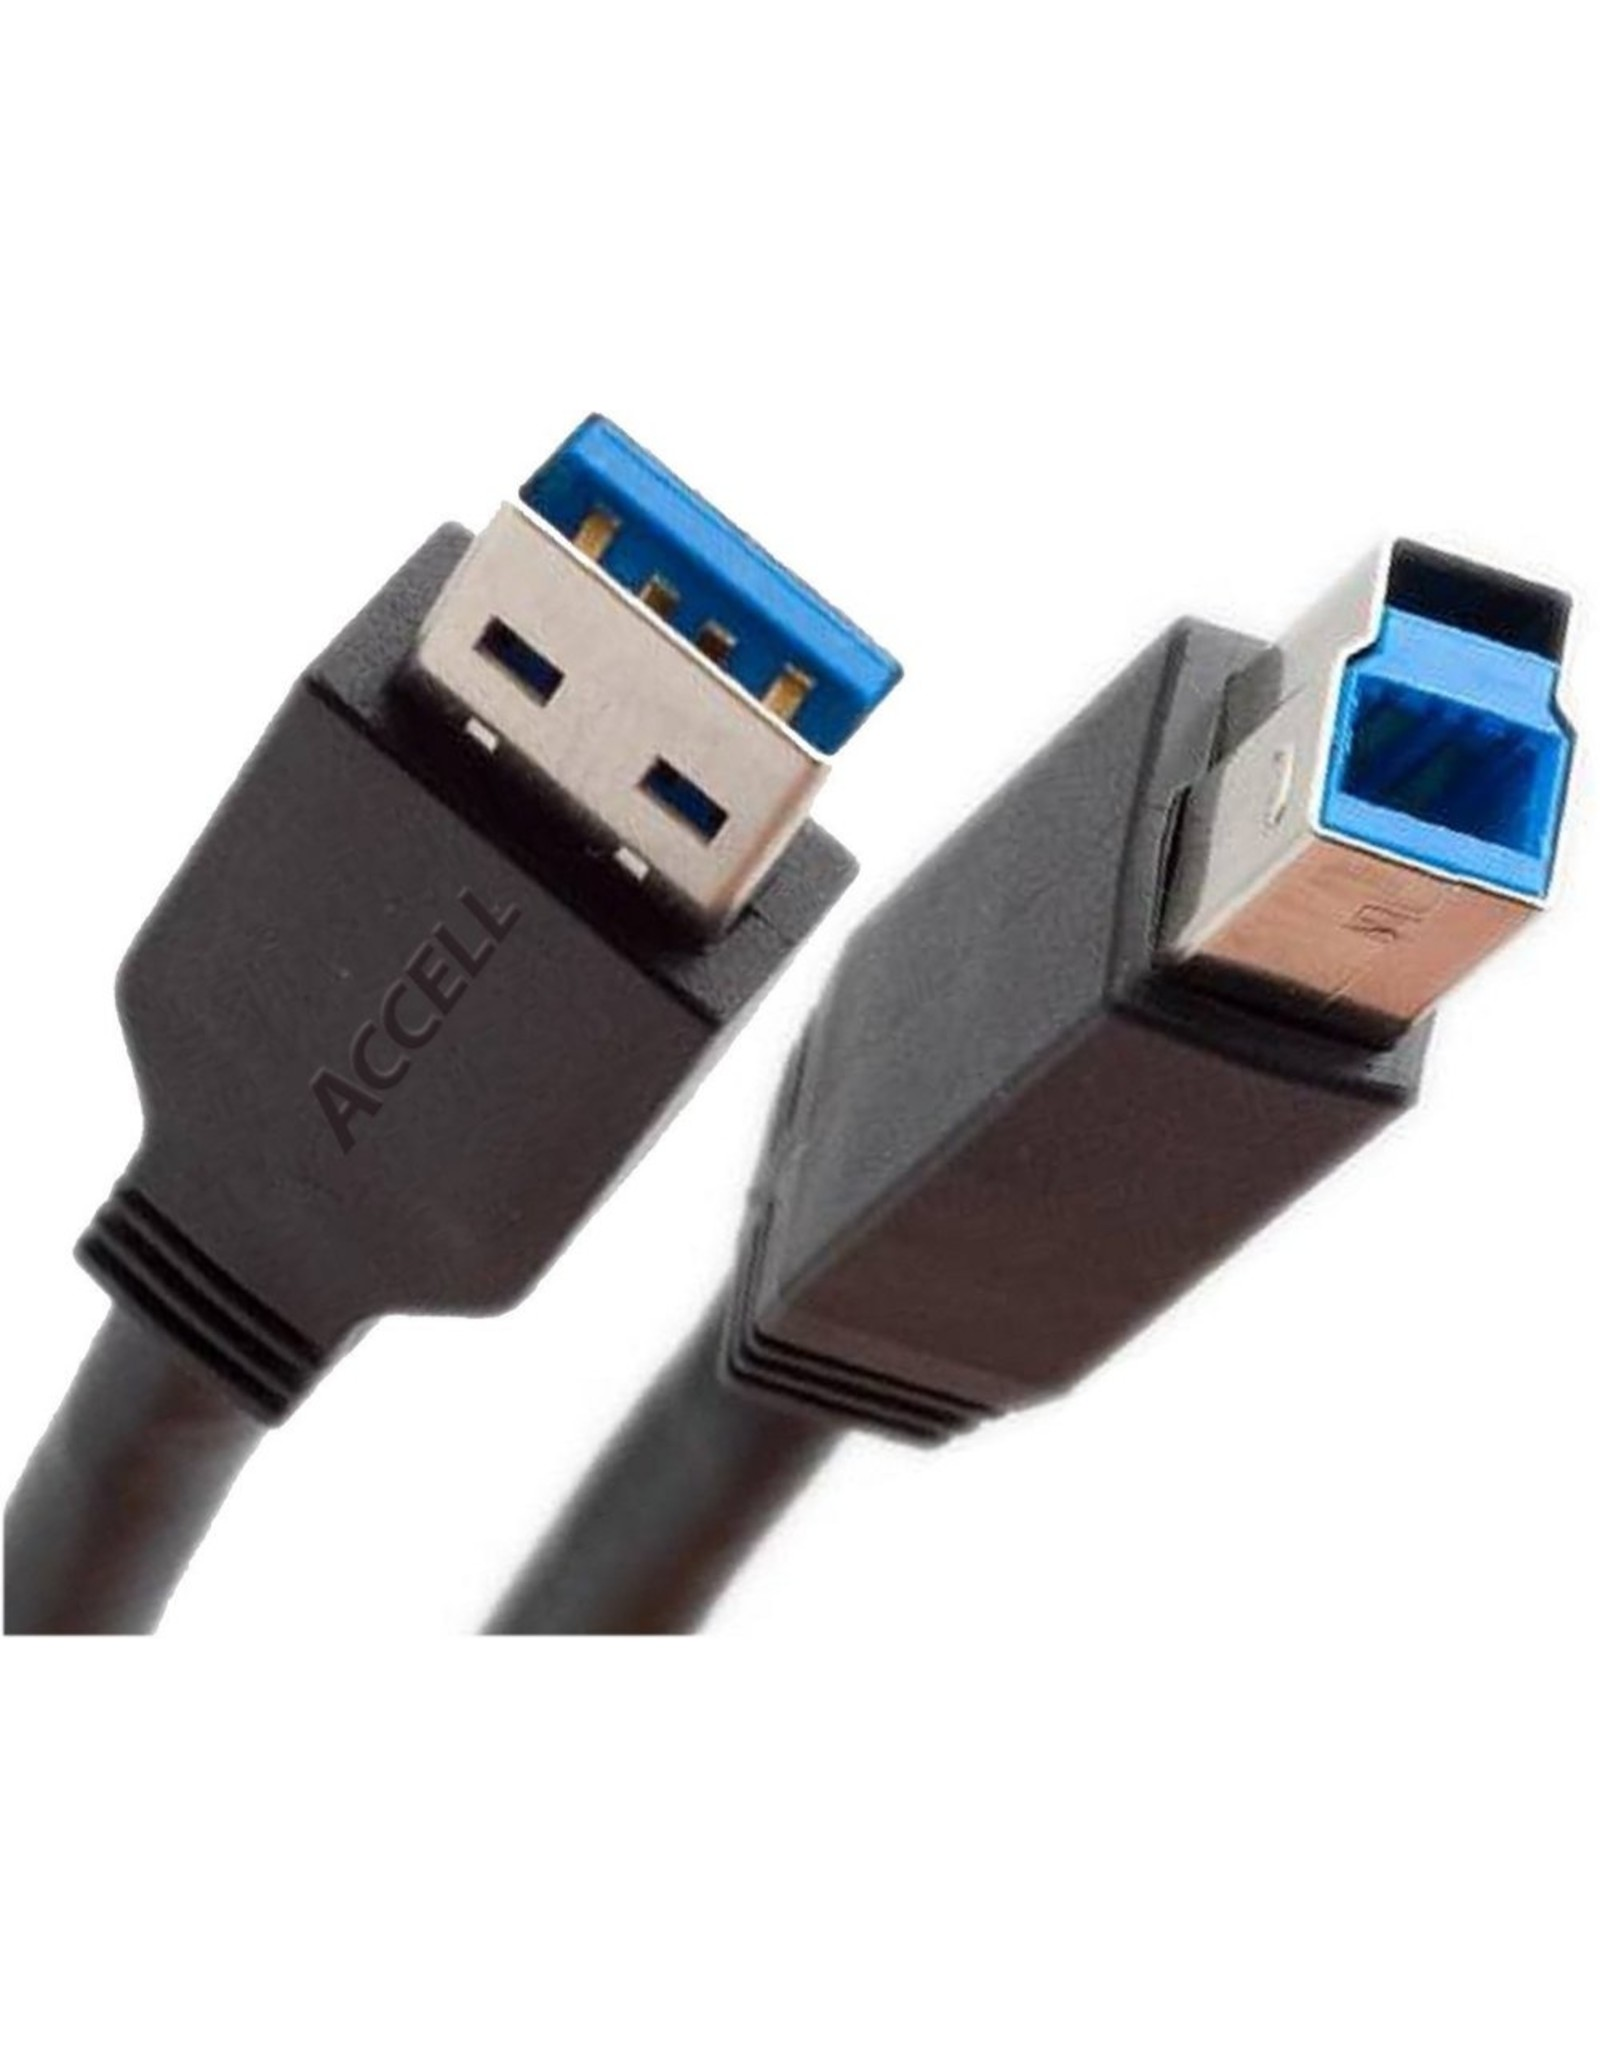 Ewent USB 3.0 Connection Cable 1.8 Meter